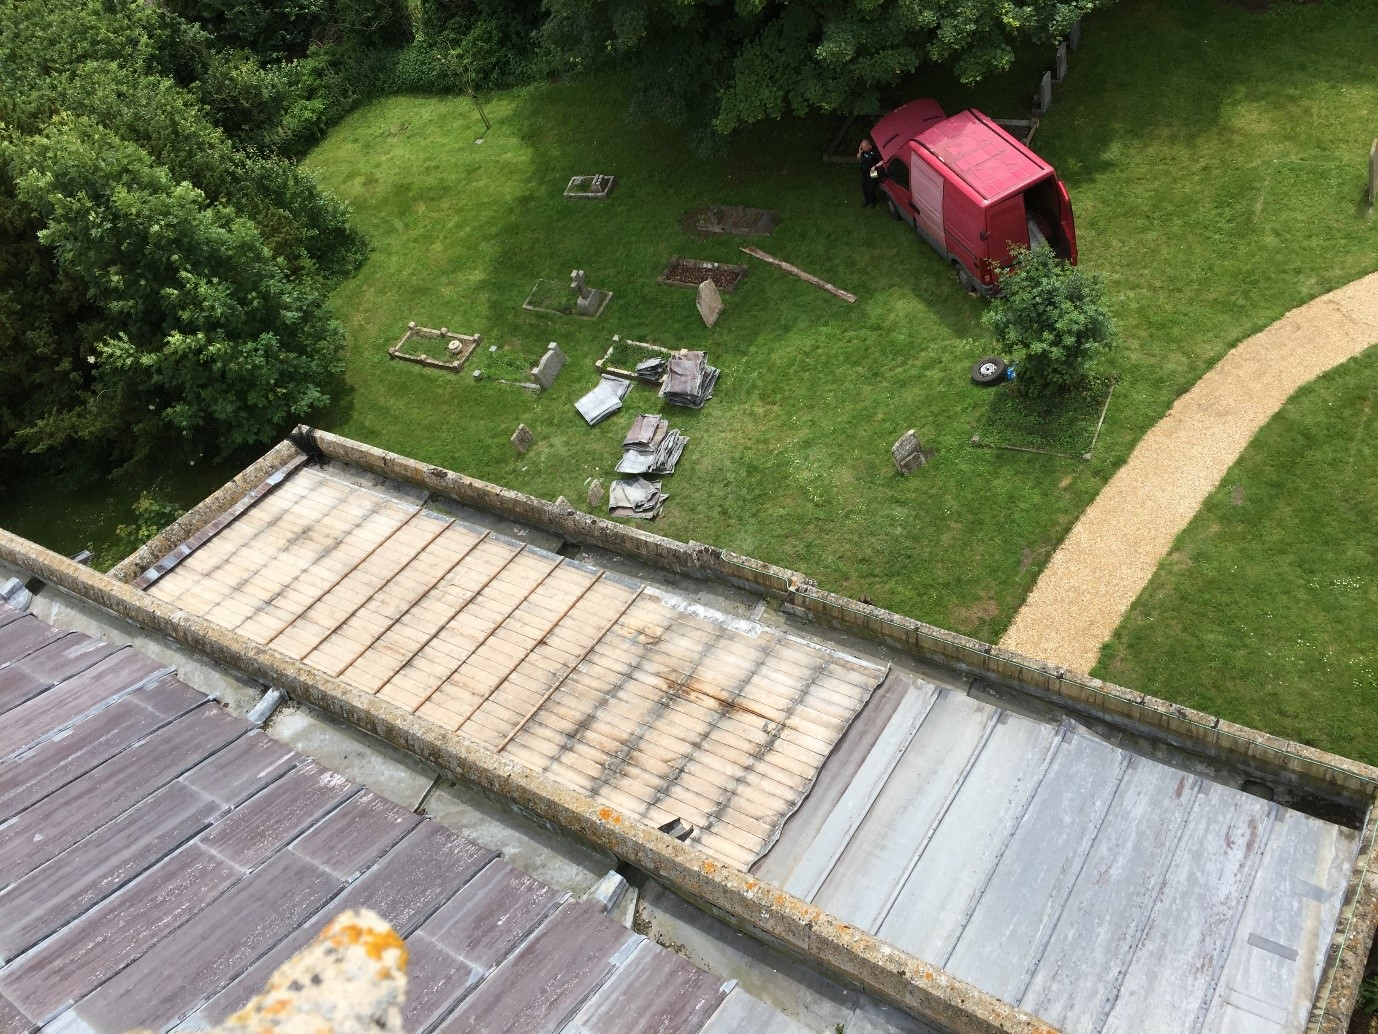 Church roof lead theft